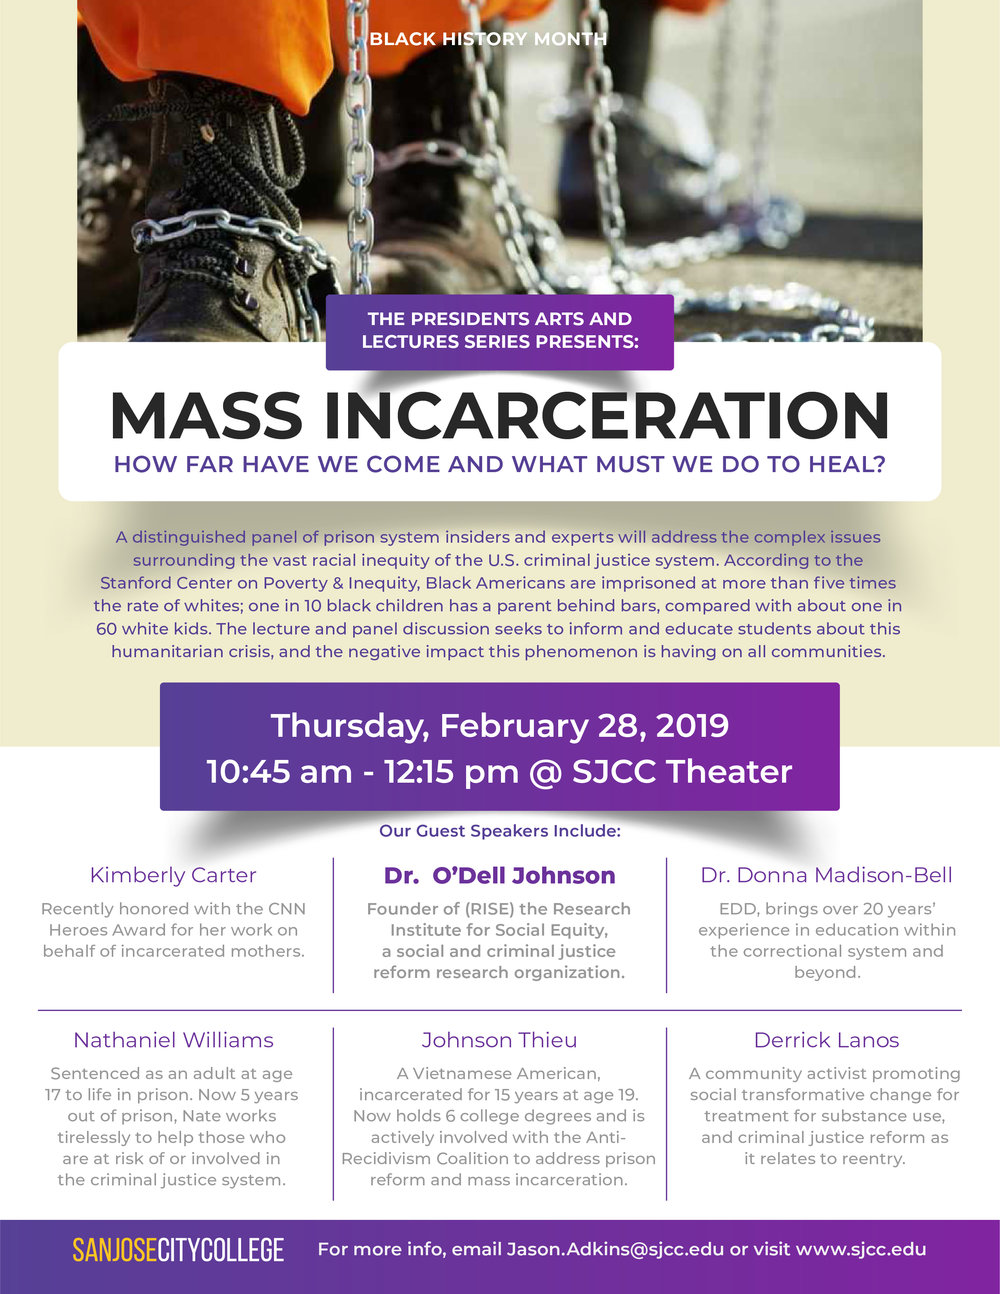 Mass Incarceration_Flyer_Revised 03-02.jpg